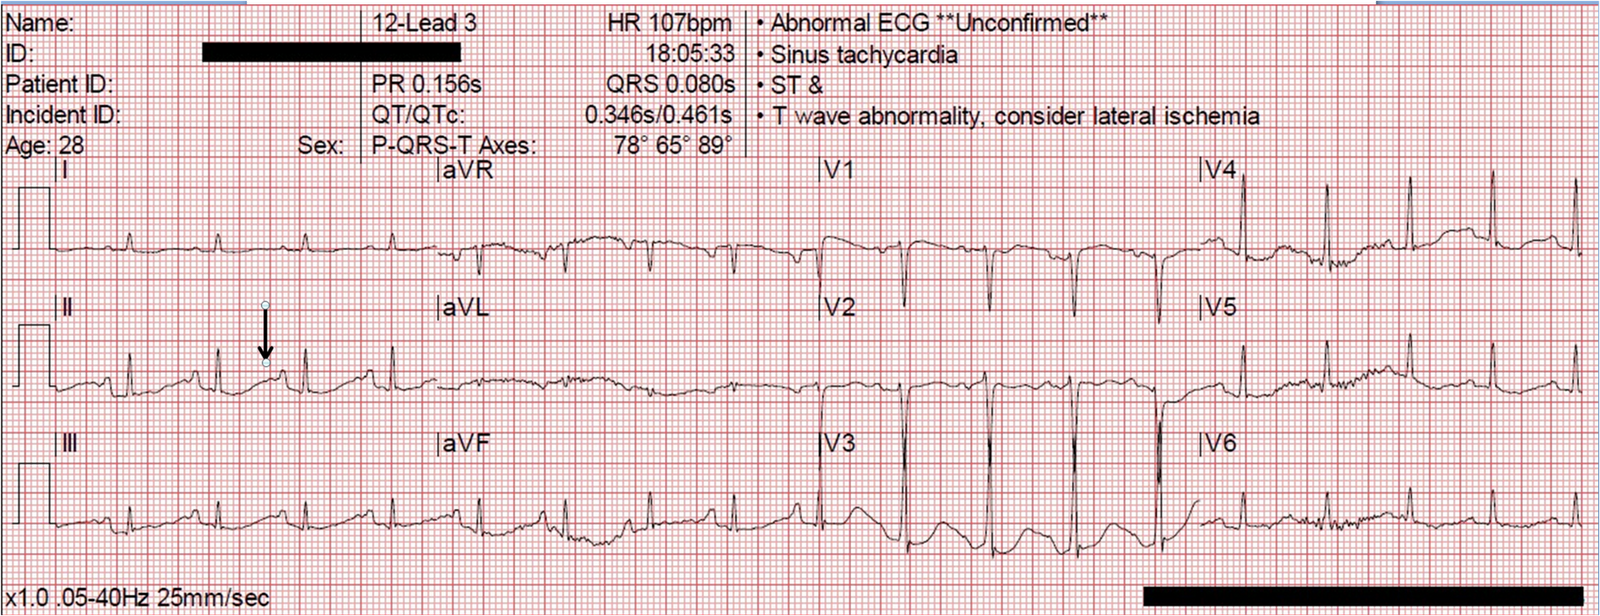 Prehospital Ventricular Fibrillation in a Young Woman  What is the    Ventricular Fibrillation Ecg